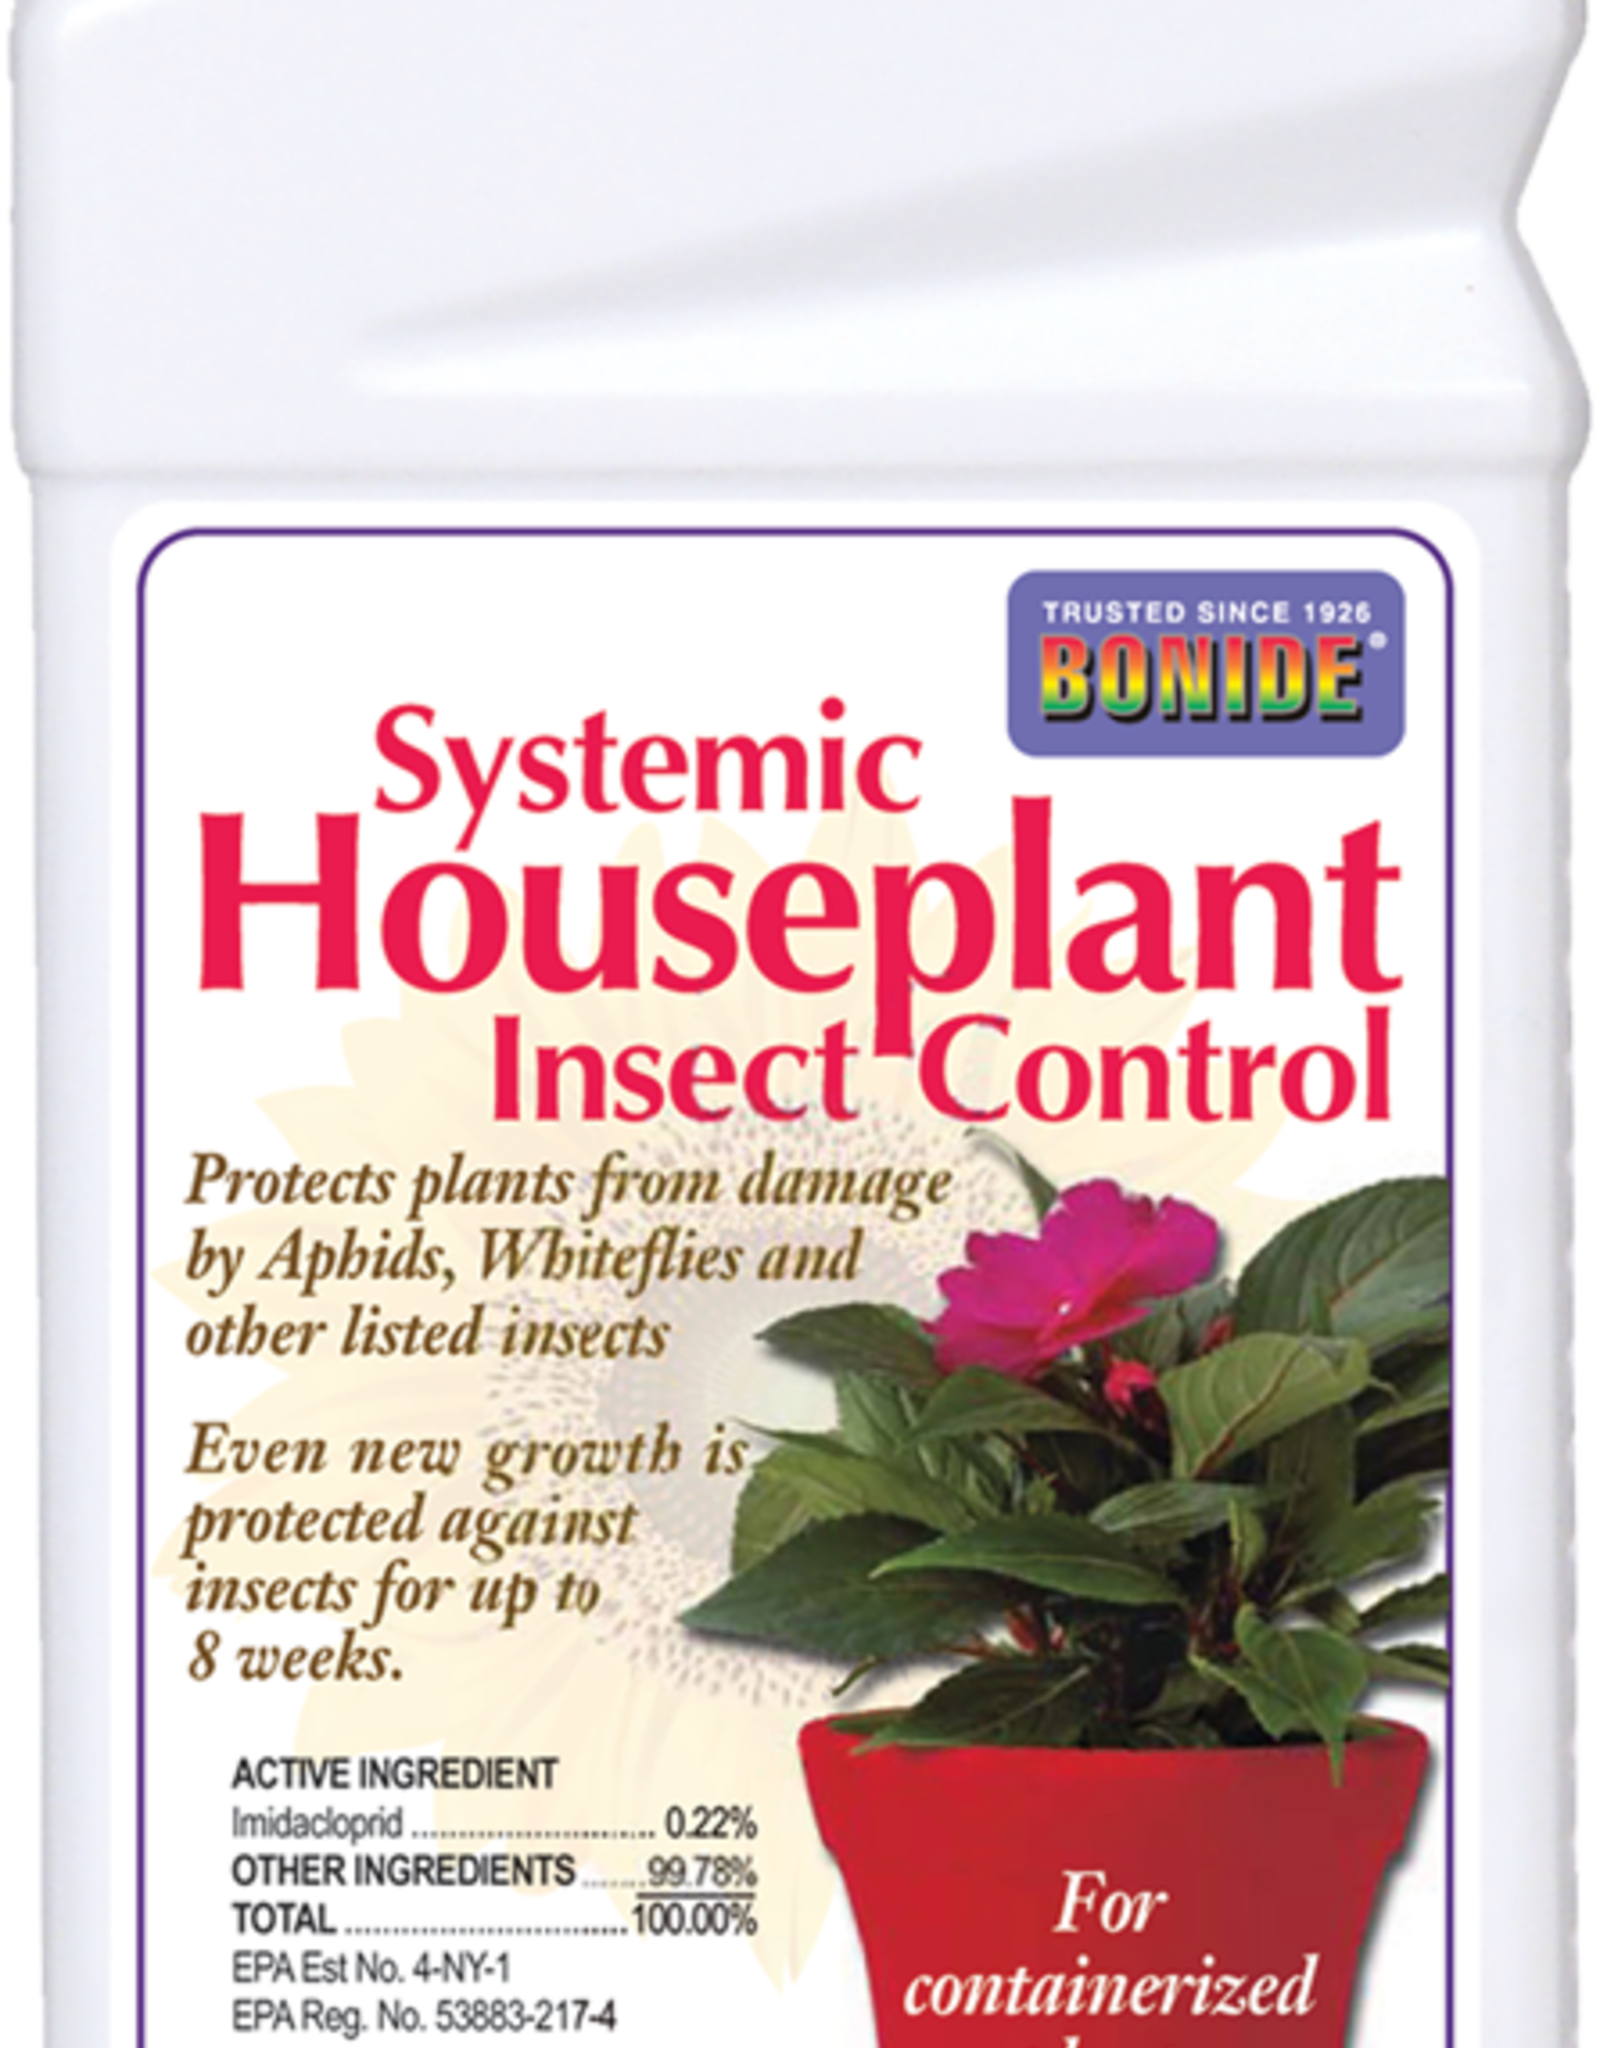 BONIDE PRODUCTS INC     P BONIDE SYSTEMIC HOUSEPLANT INSECT CONTROL 8OZ